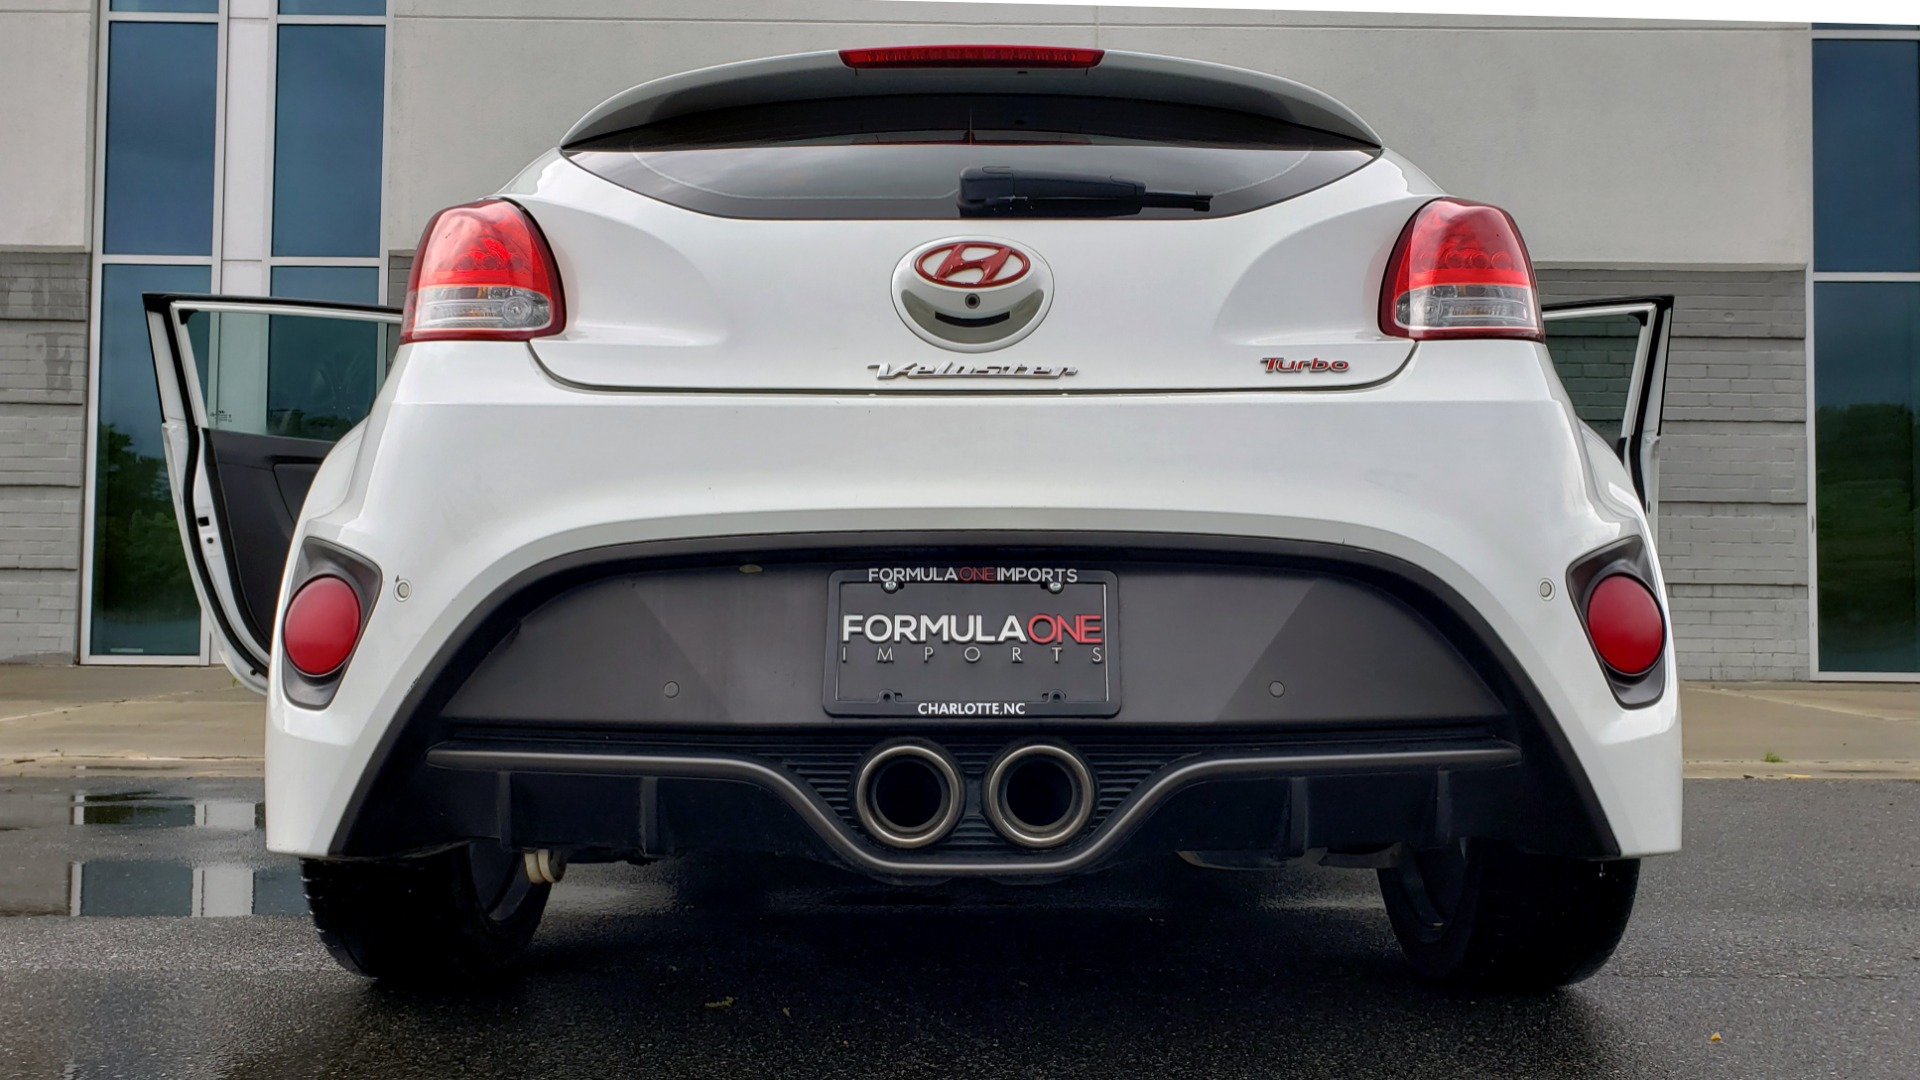 Used 2016 Hyundai VELOSTER 1.6L TURBO / 7-SPD ATUO / 3DR COUPE / NAV / PANO-ROOF for sale Sold at Formula Imports in Charlotte NC 28227 26